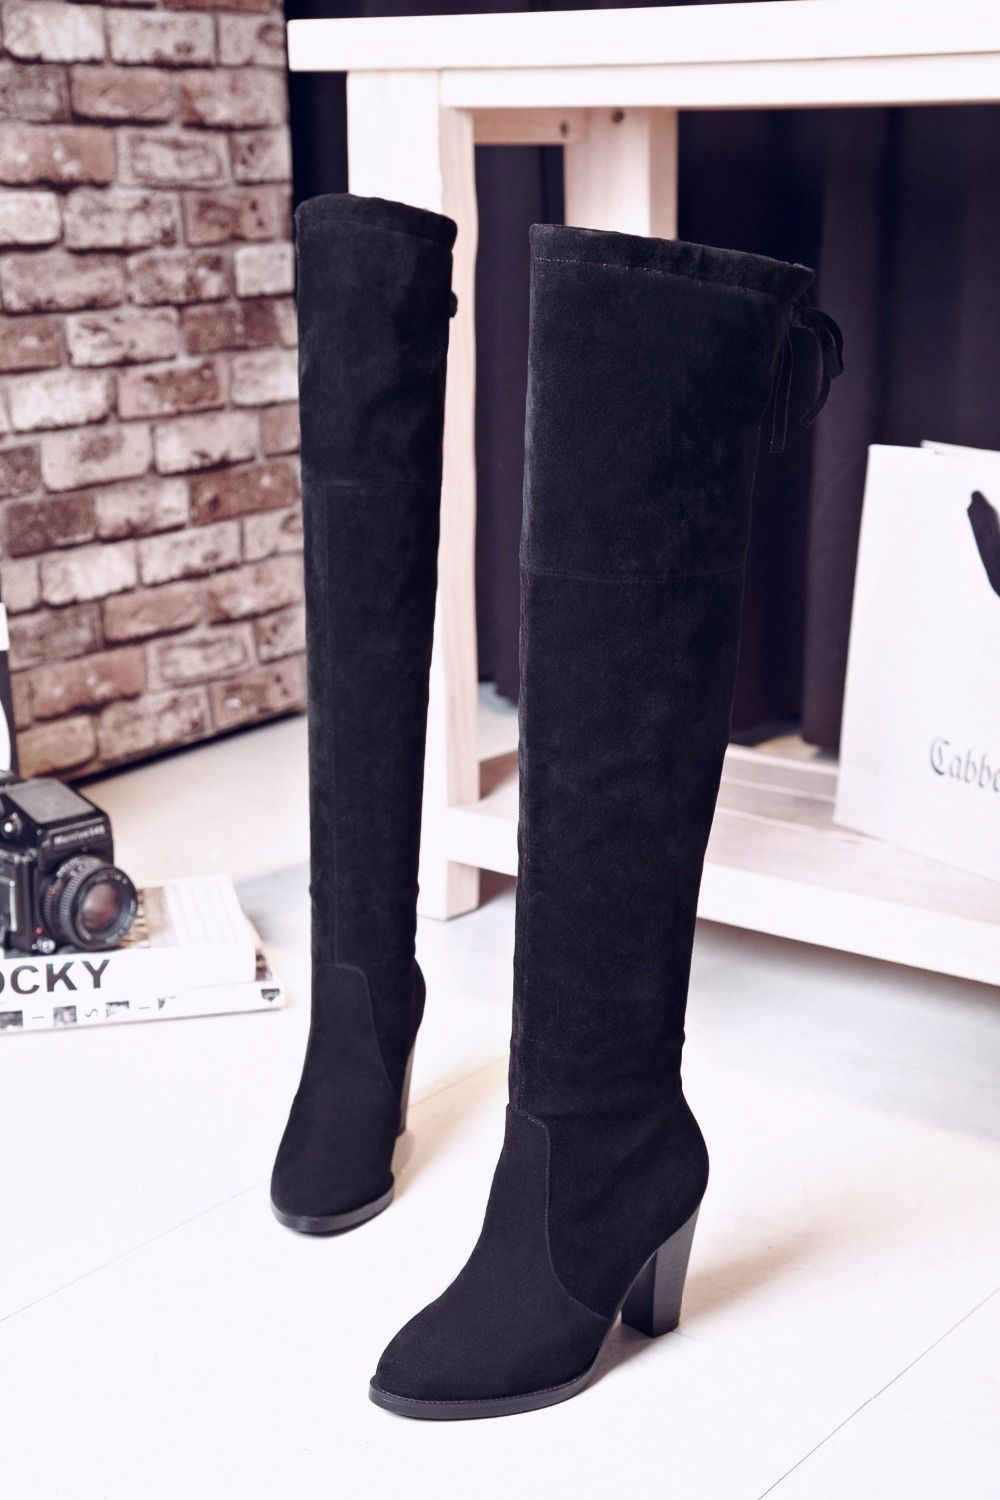 Find More Women's Boots Information about High Quality Genuine Suede  Leather… | Women's over the knee boots, Leather over the knee boots, Over  the knee boots